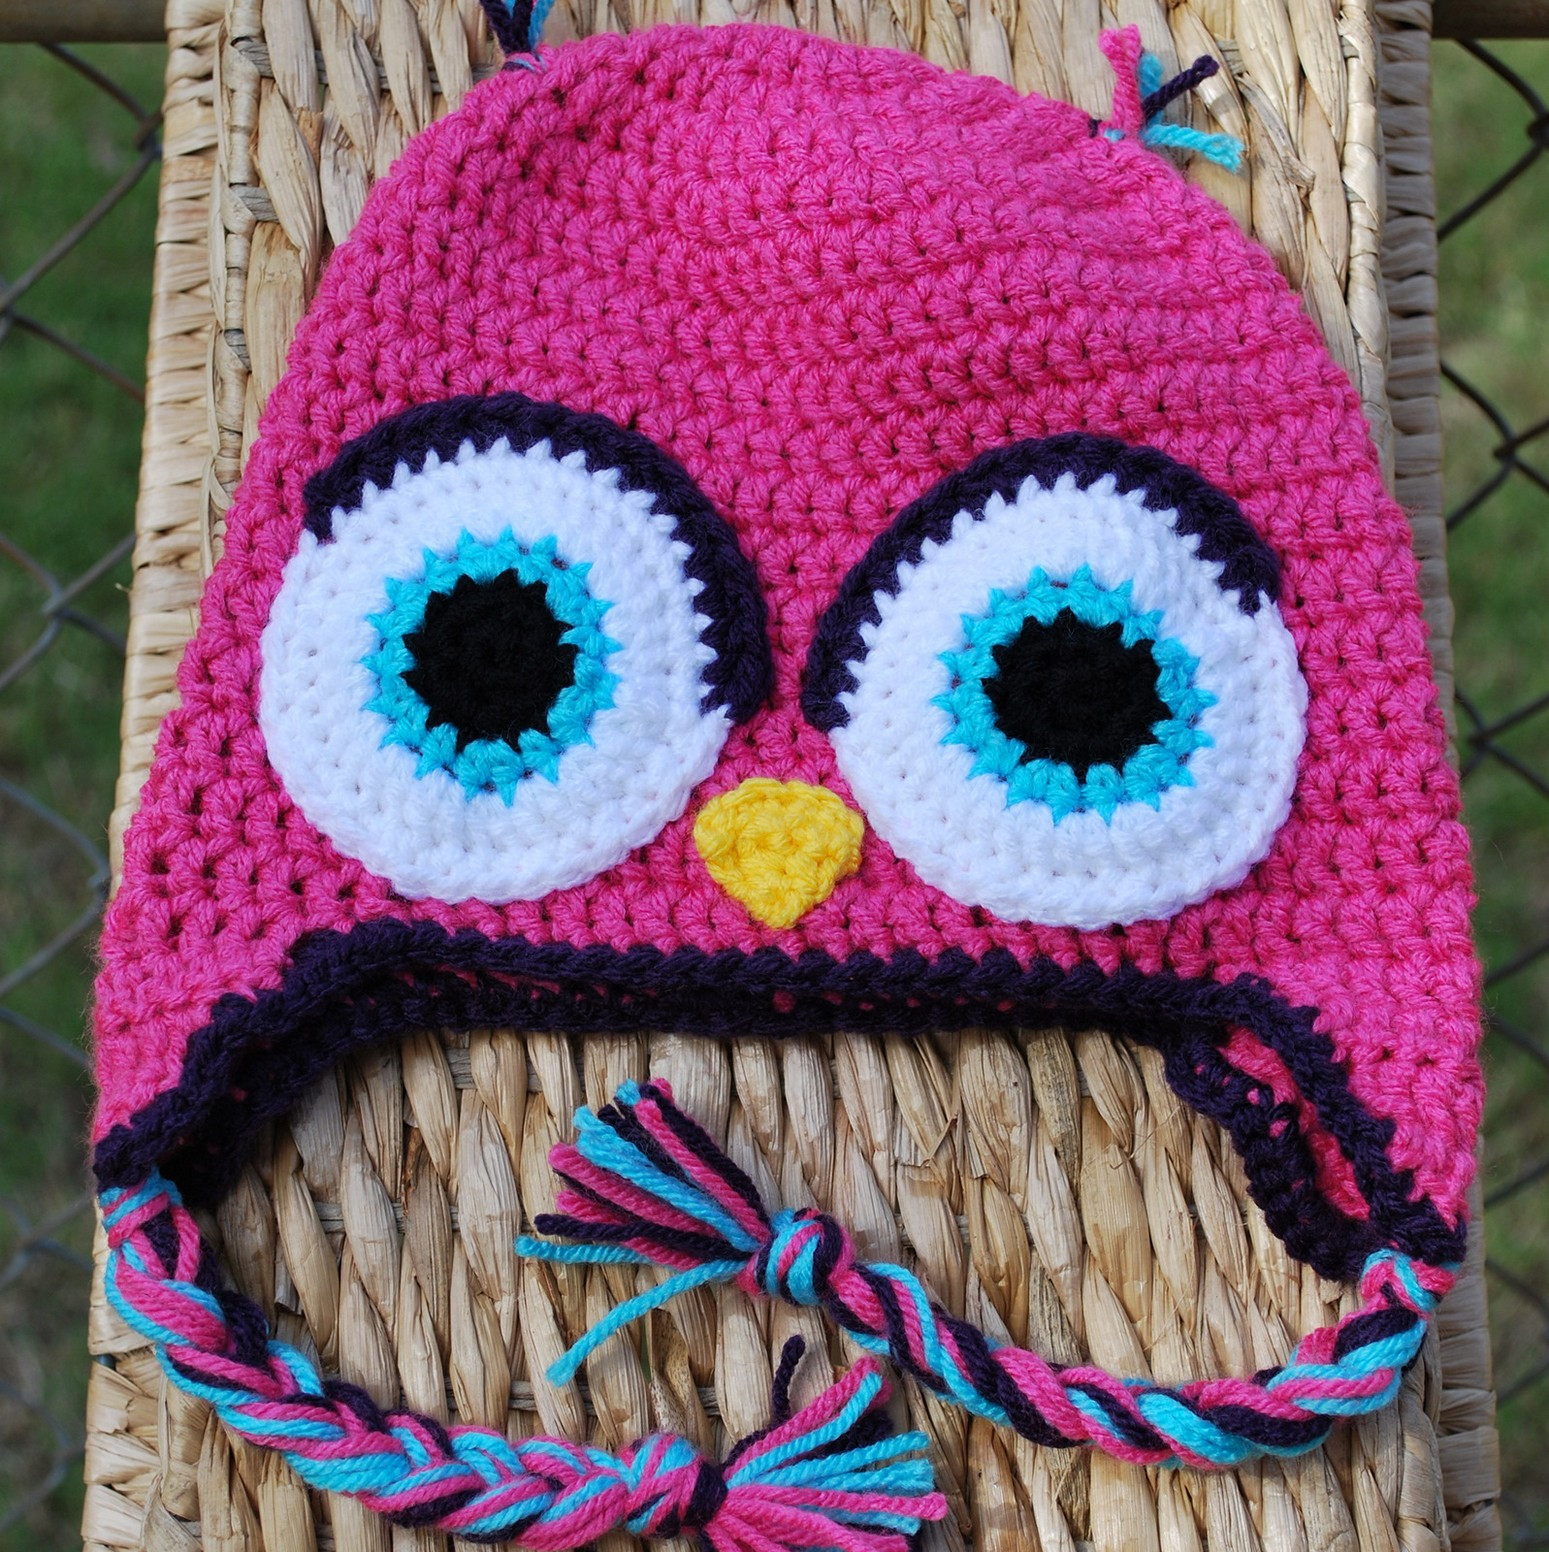 New Crochet Owl Pattern for Adorable and Cute Design Crochet Hat Patterns for Adults Of Marvelous 47 Ideas Crochet Hat Patterns for Adults